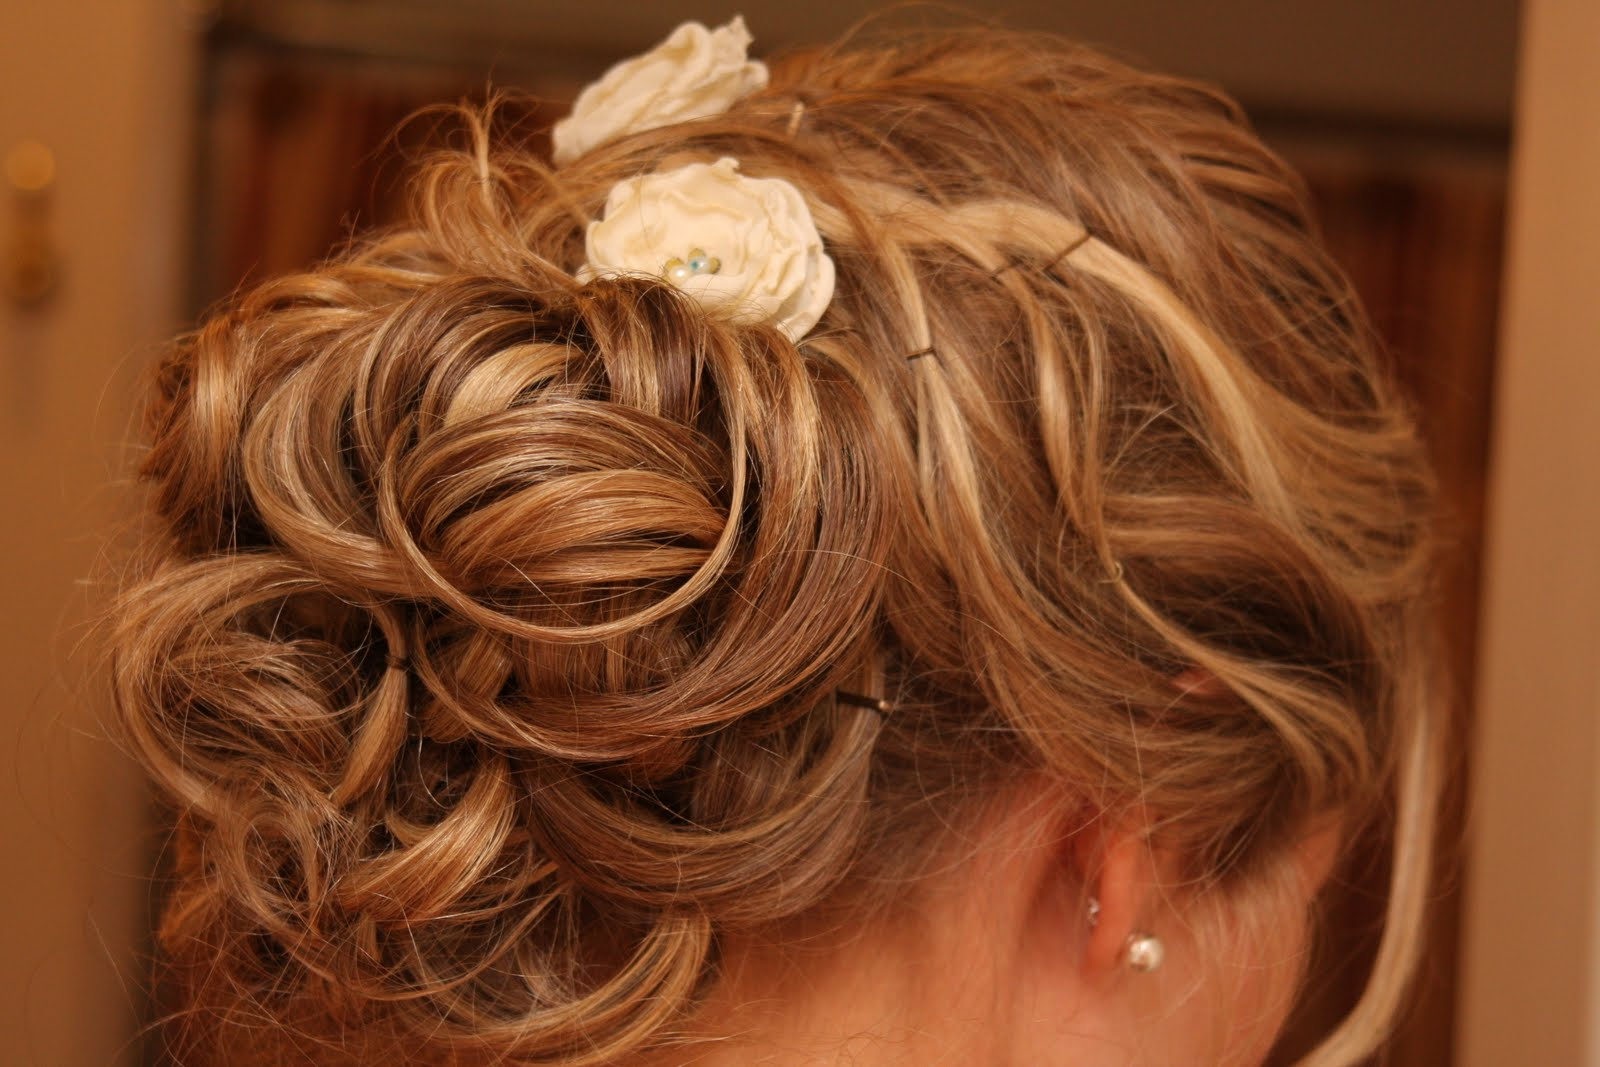 39 walk down the aisle with amazing wedding hairstyles for thin